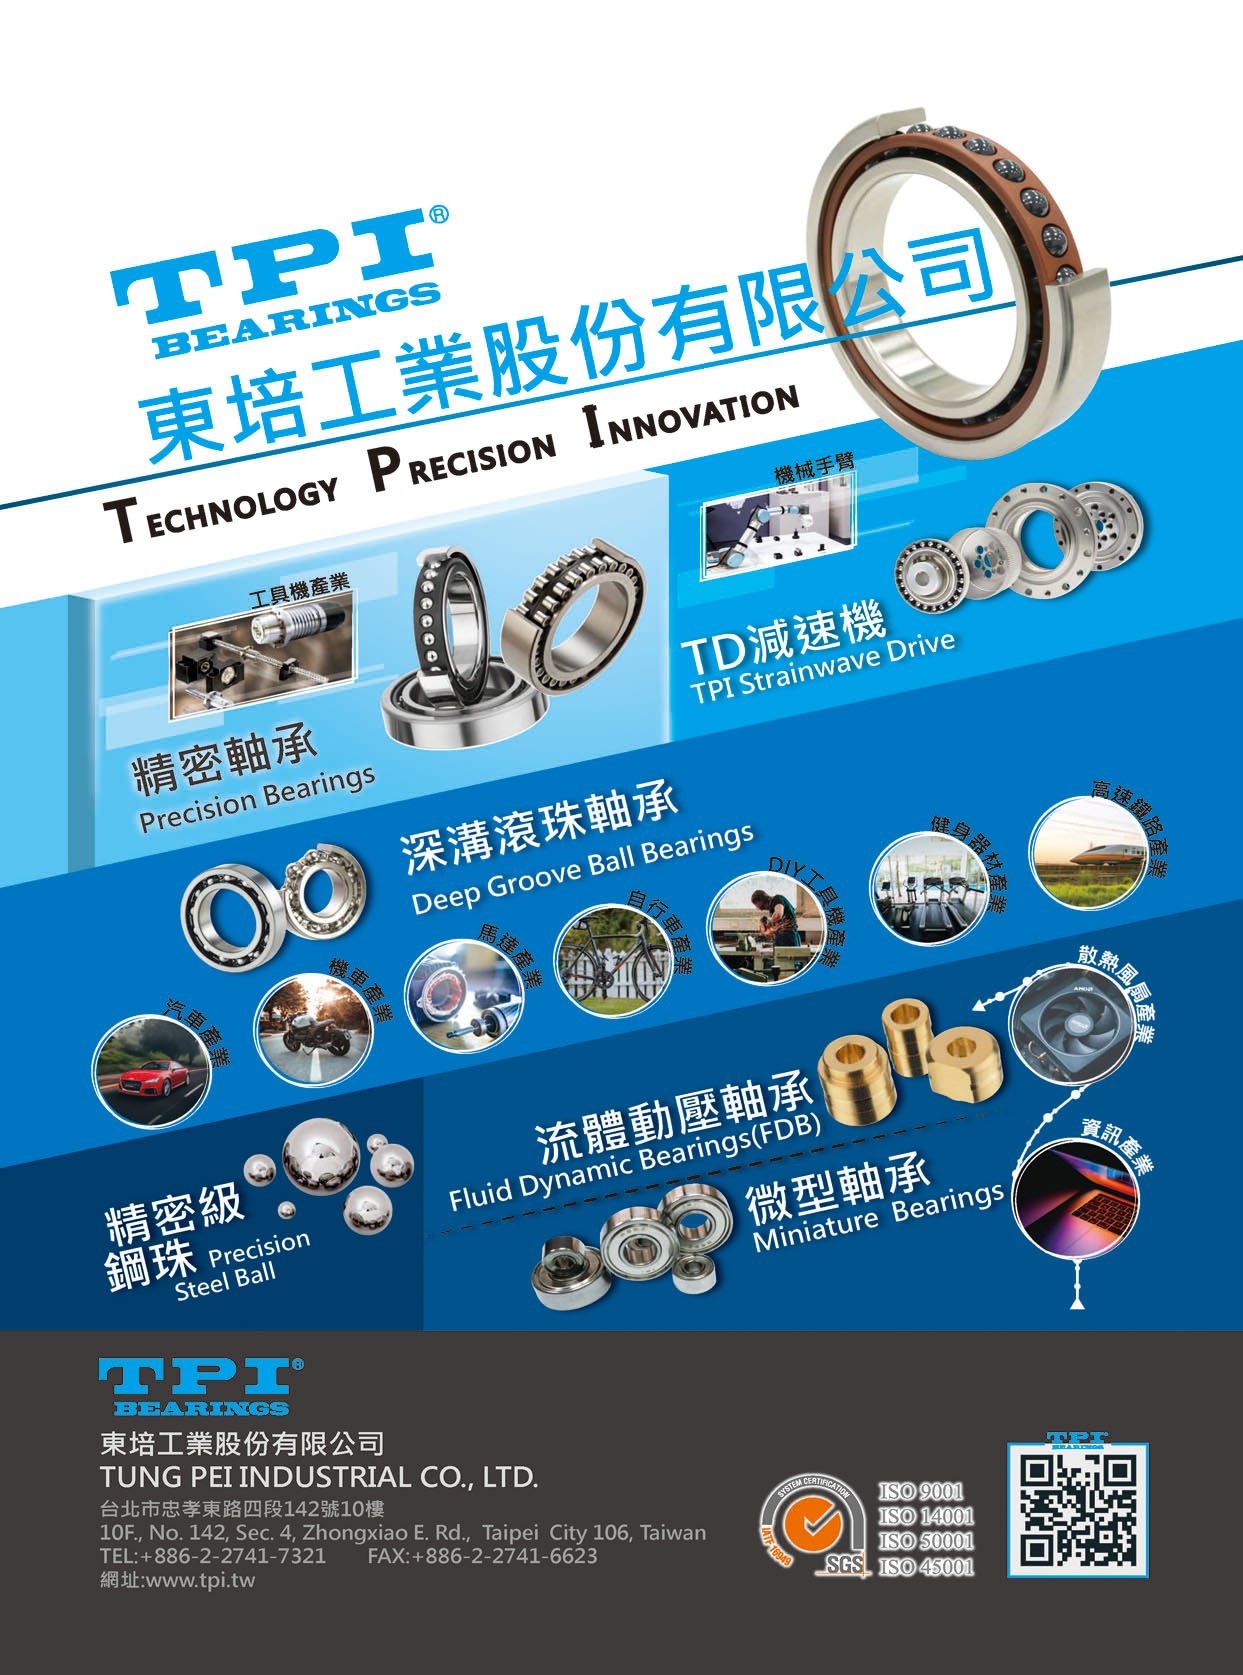 Who Makes Machinery in Taiwan (Chinese) TUNG PEI INDUSTRIAL CO., LTD.